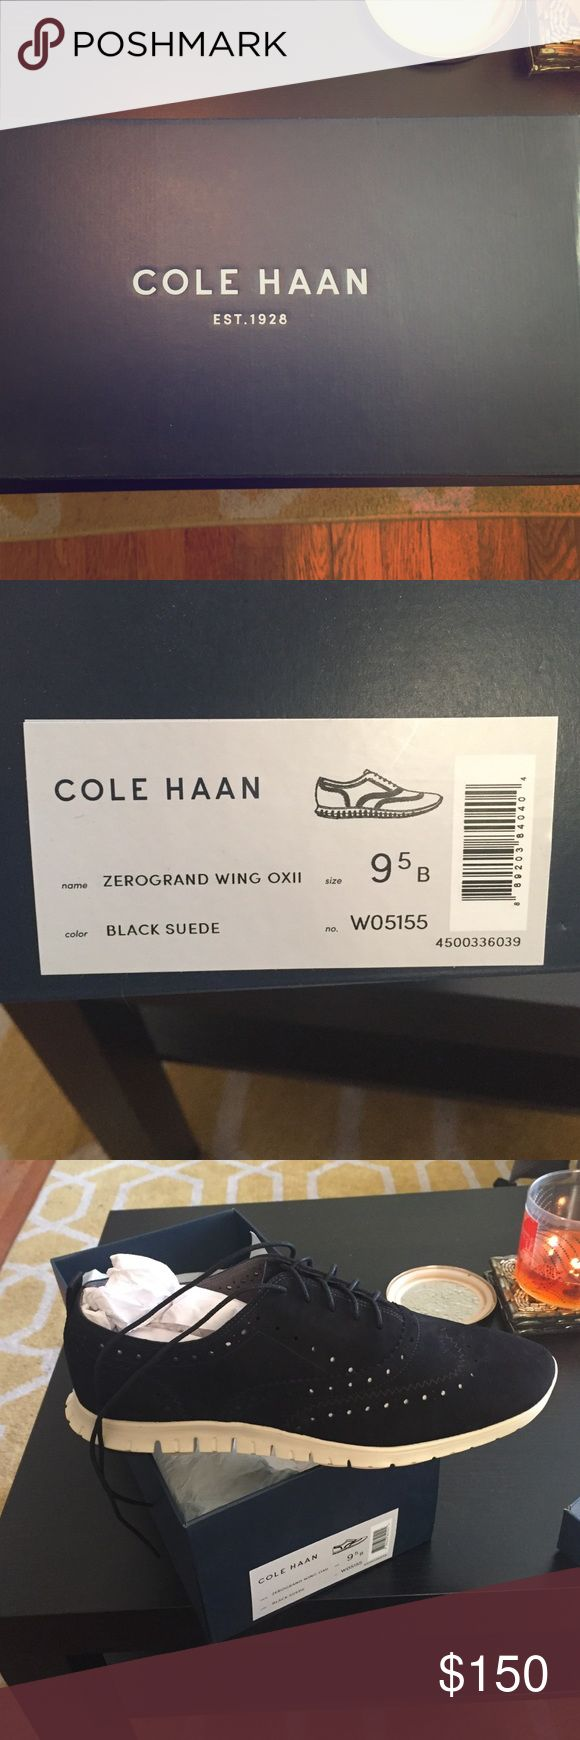 Cole Hann Zerogrand Wing OXII 9.5 size, black suede (not treated) NEVER WORN! Cole Haan Shoes Flats & Loafers